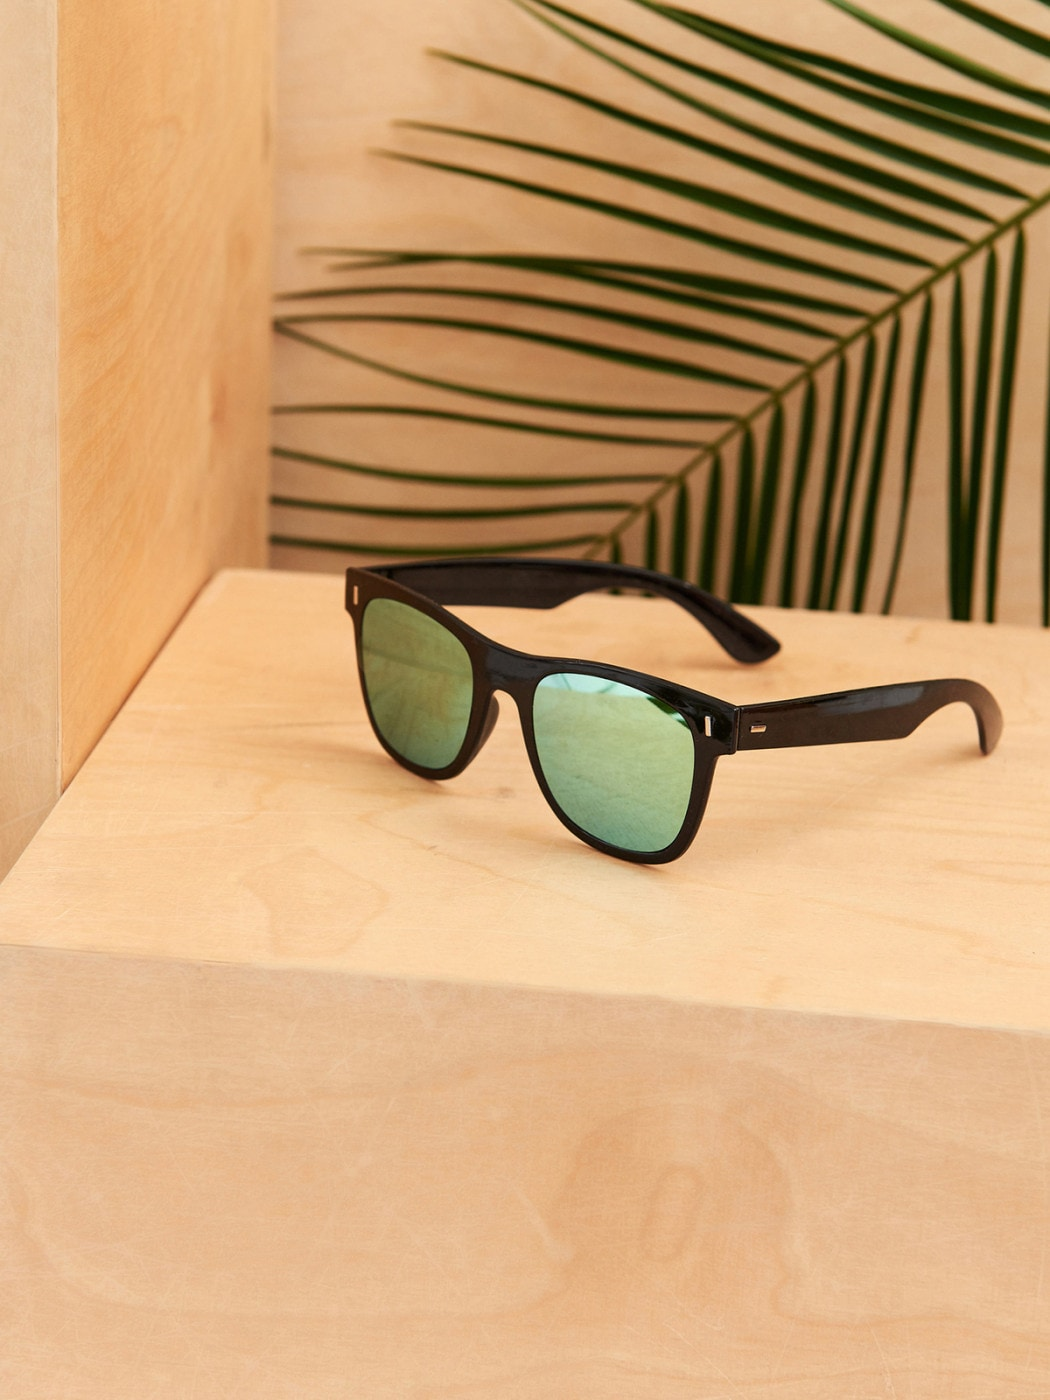 Men's sunglasess Top Secret Mirrored sunglasses